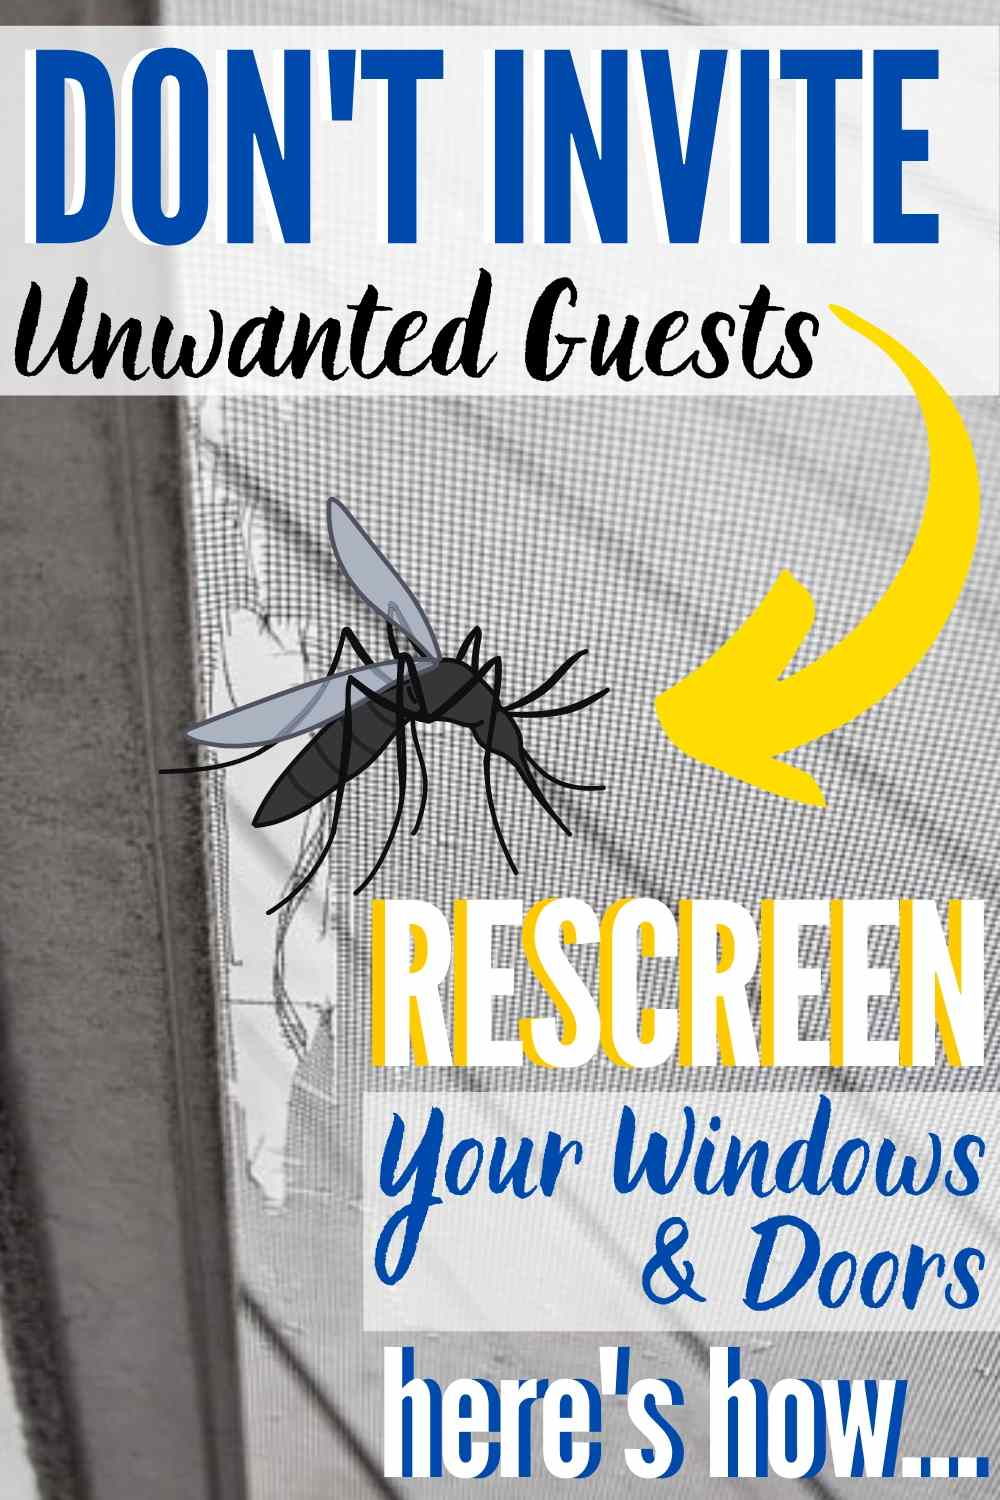 DIY window & door rescreening is a simple way to save money! This easy DIY project takes less than 30 minutes per window. Here's how!